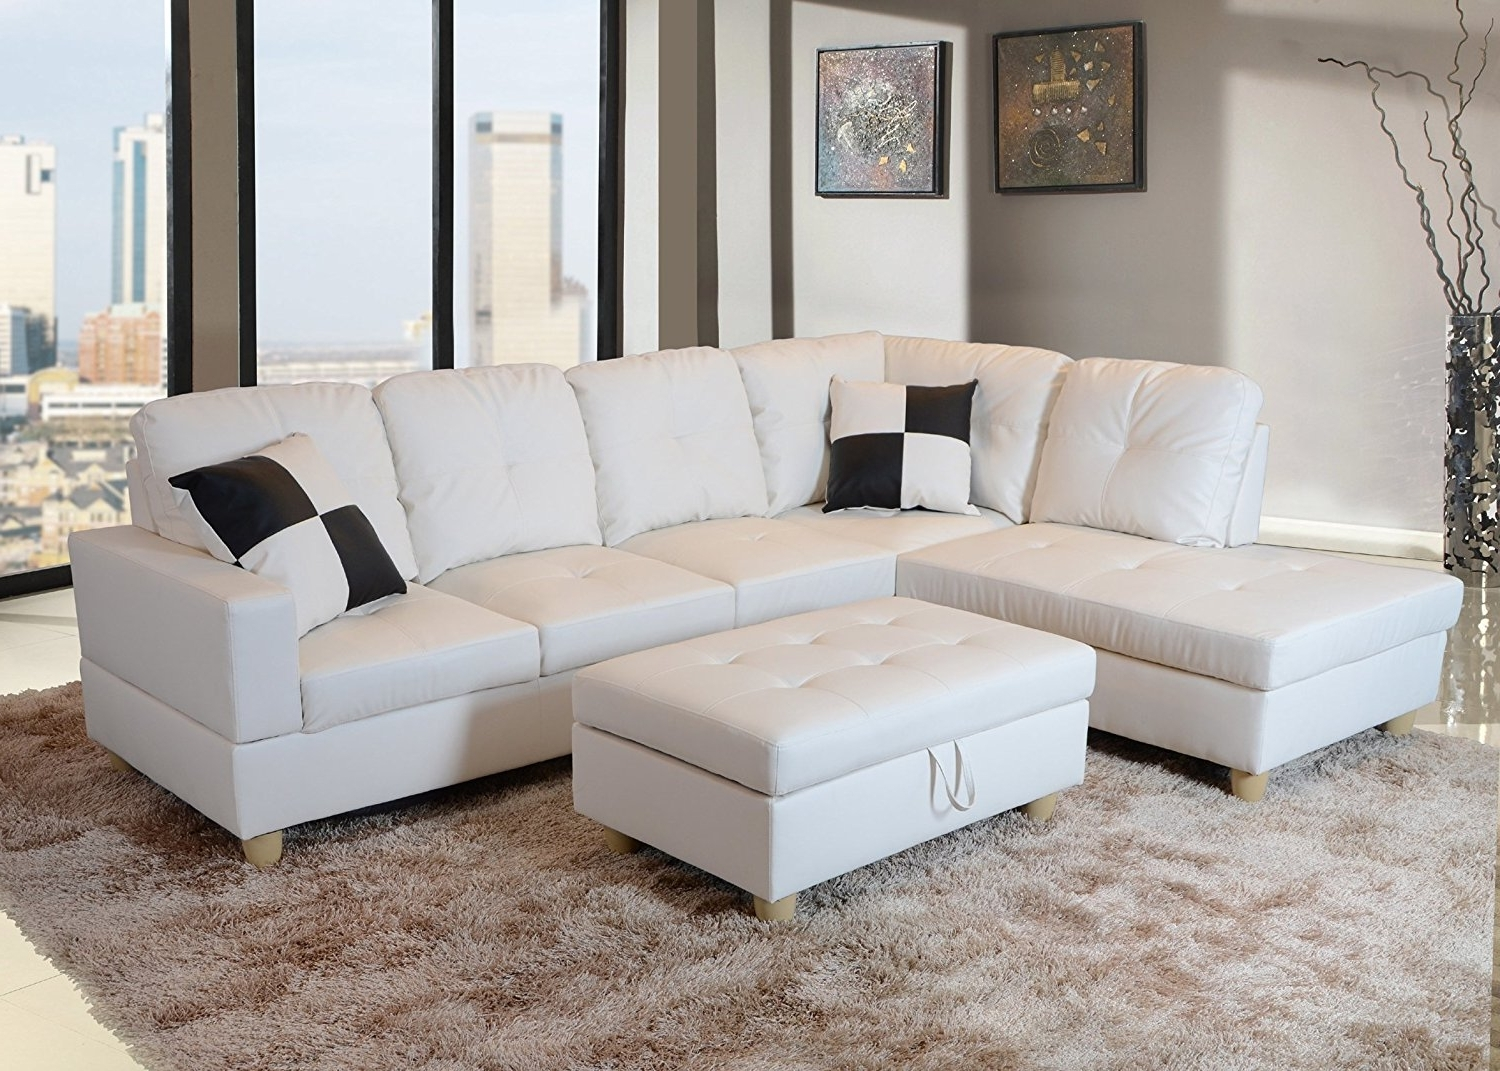 Most Current Amazon: Lifestyle Faux Leather Right Facing Sectional Sofa Set Regarding Leather Sectional Sofas With Ottoman (View 9 of 15)